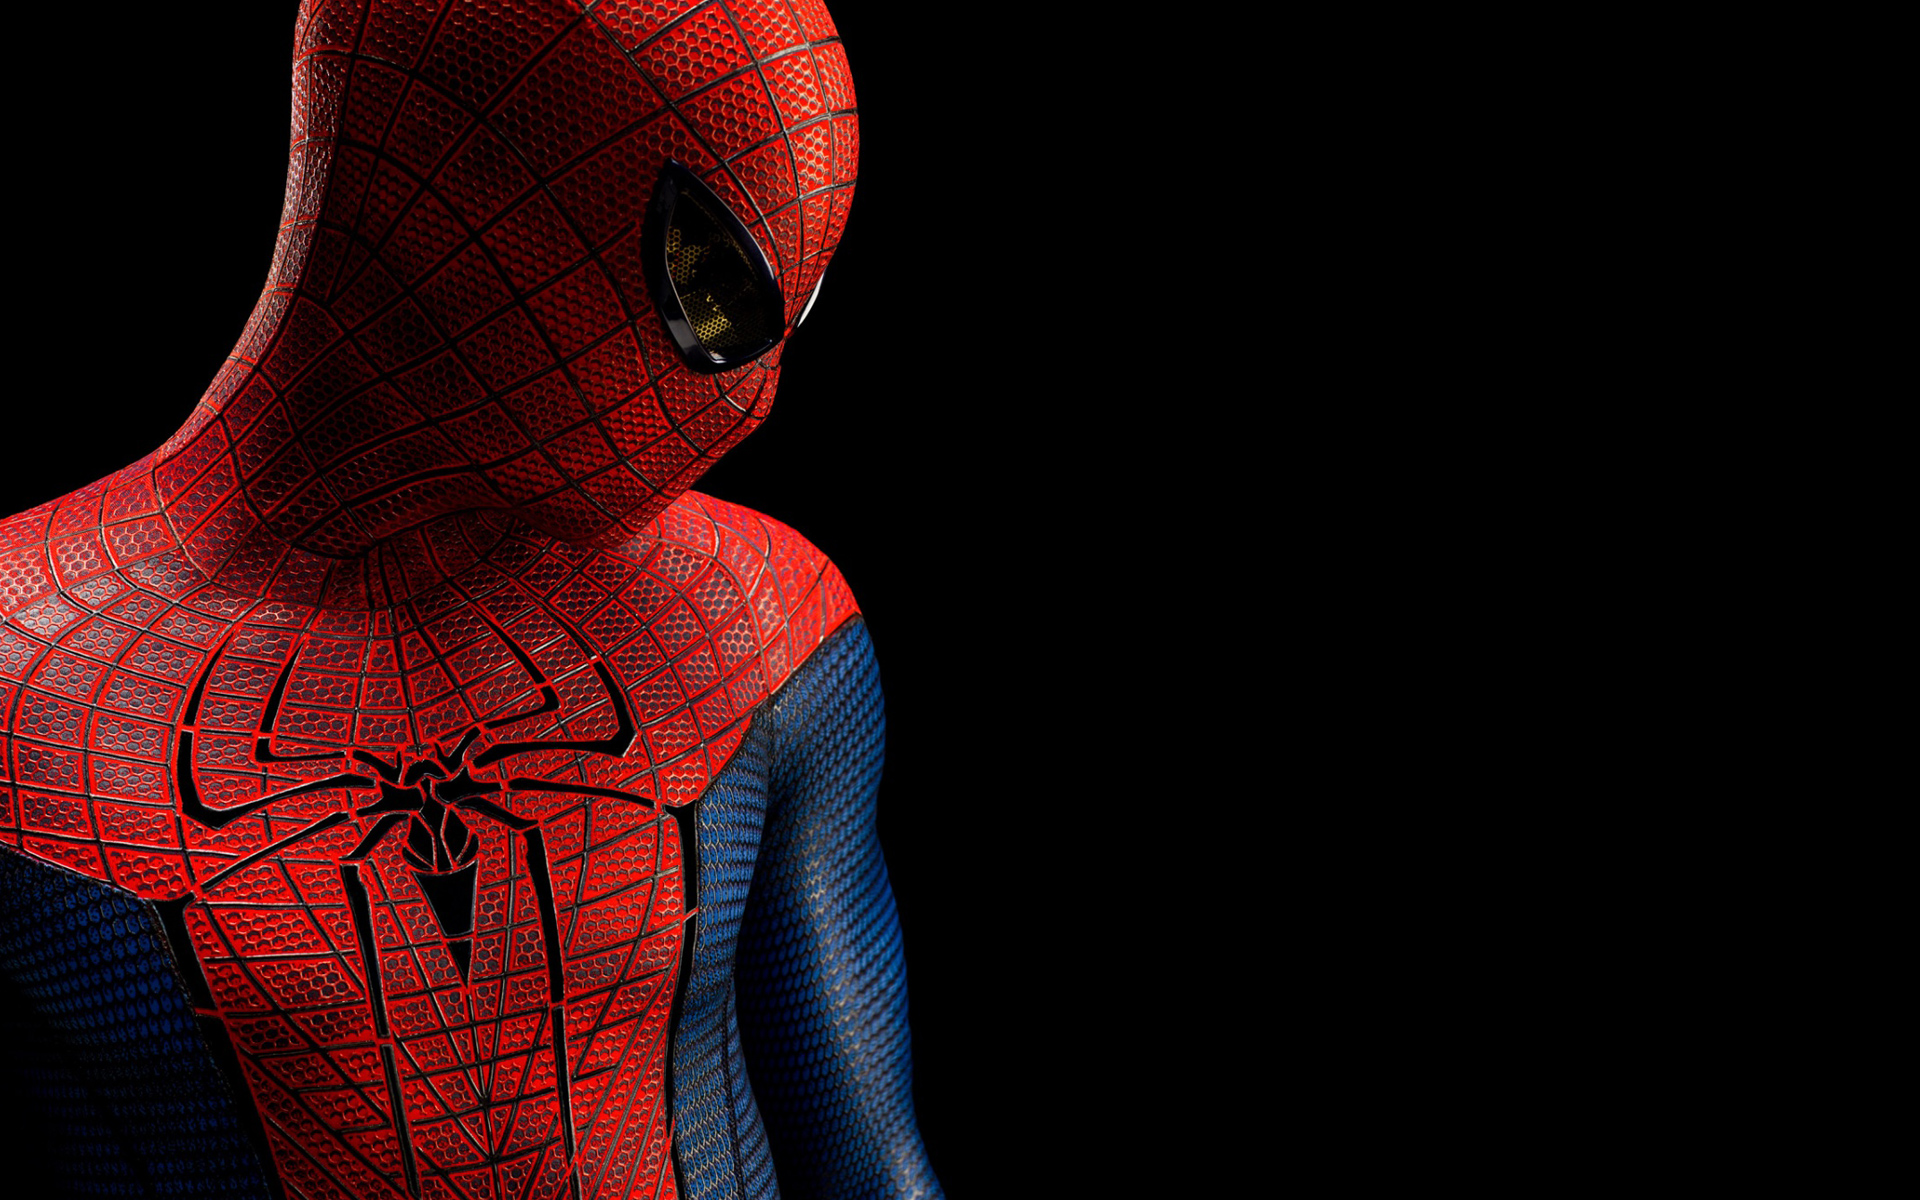 The Amazing Spider Man Wallpapers HD Wallpapers 1920x1200